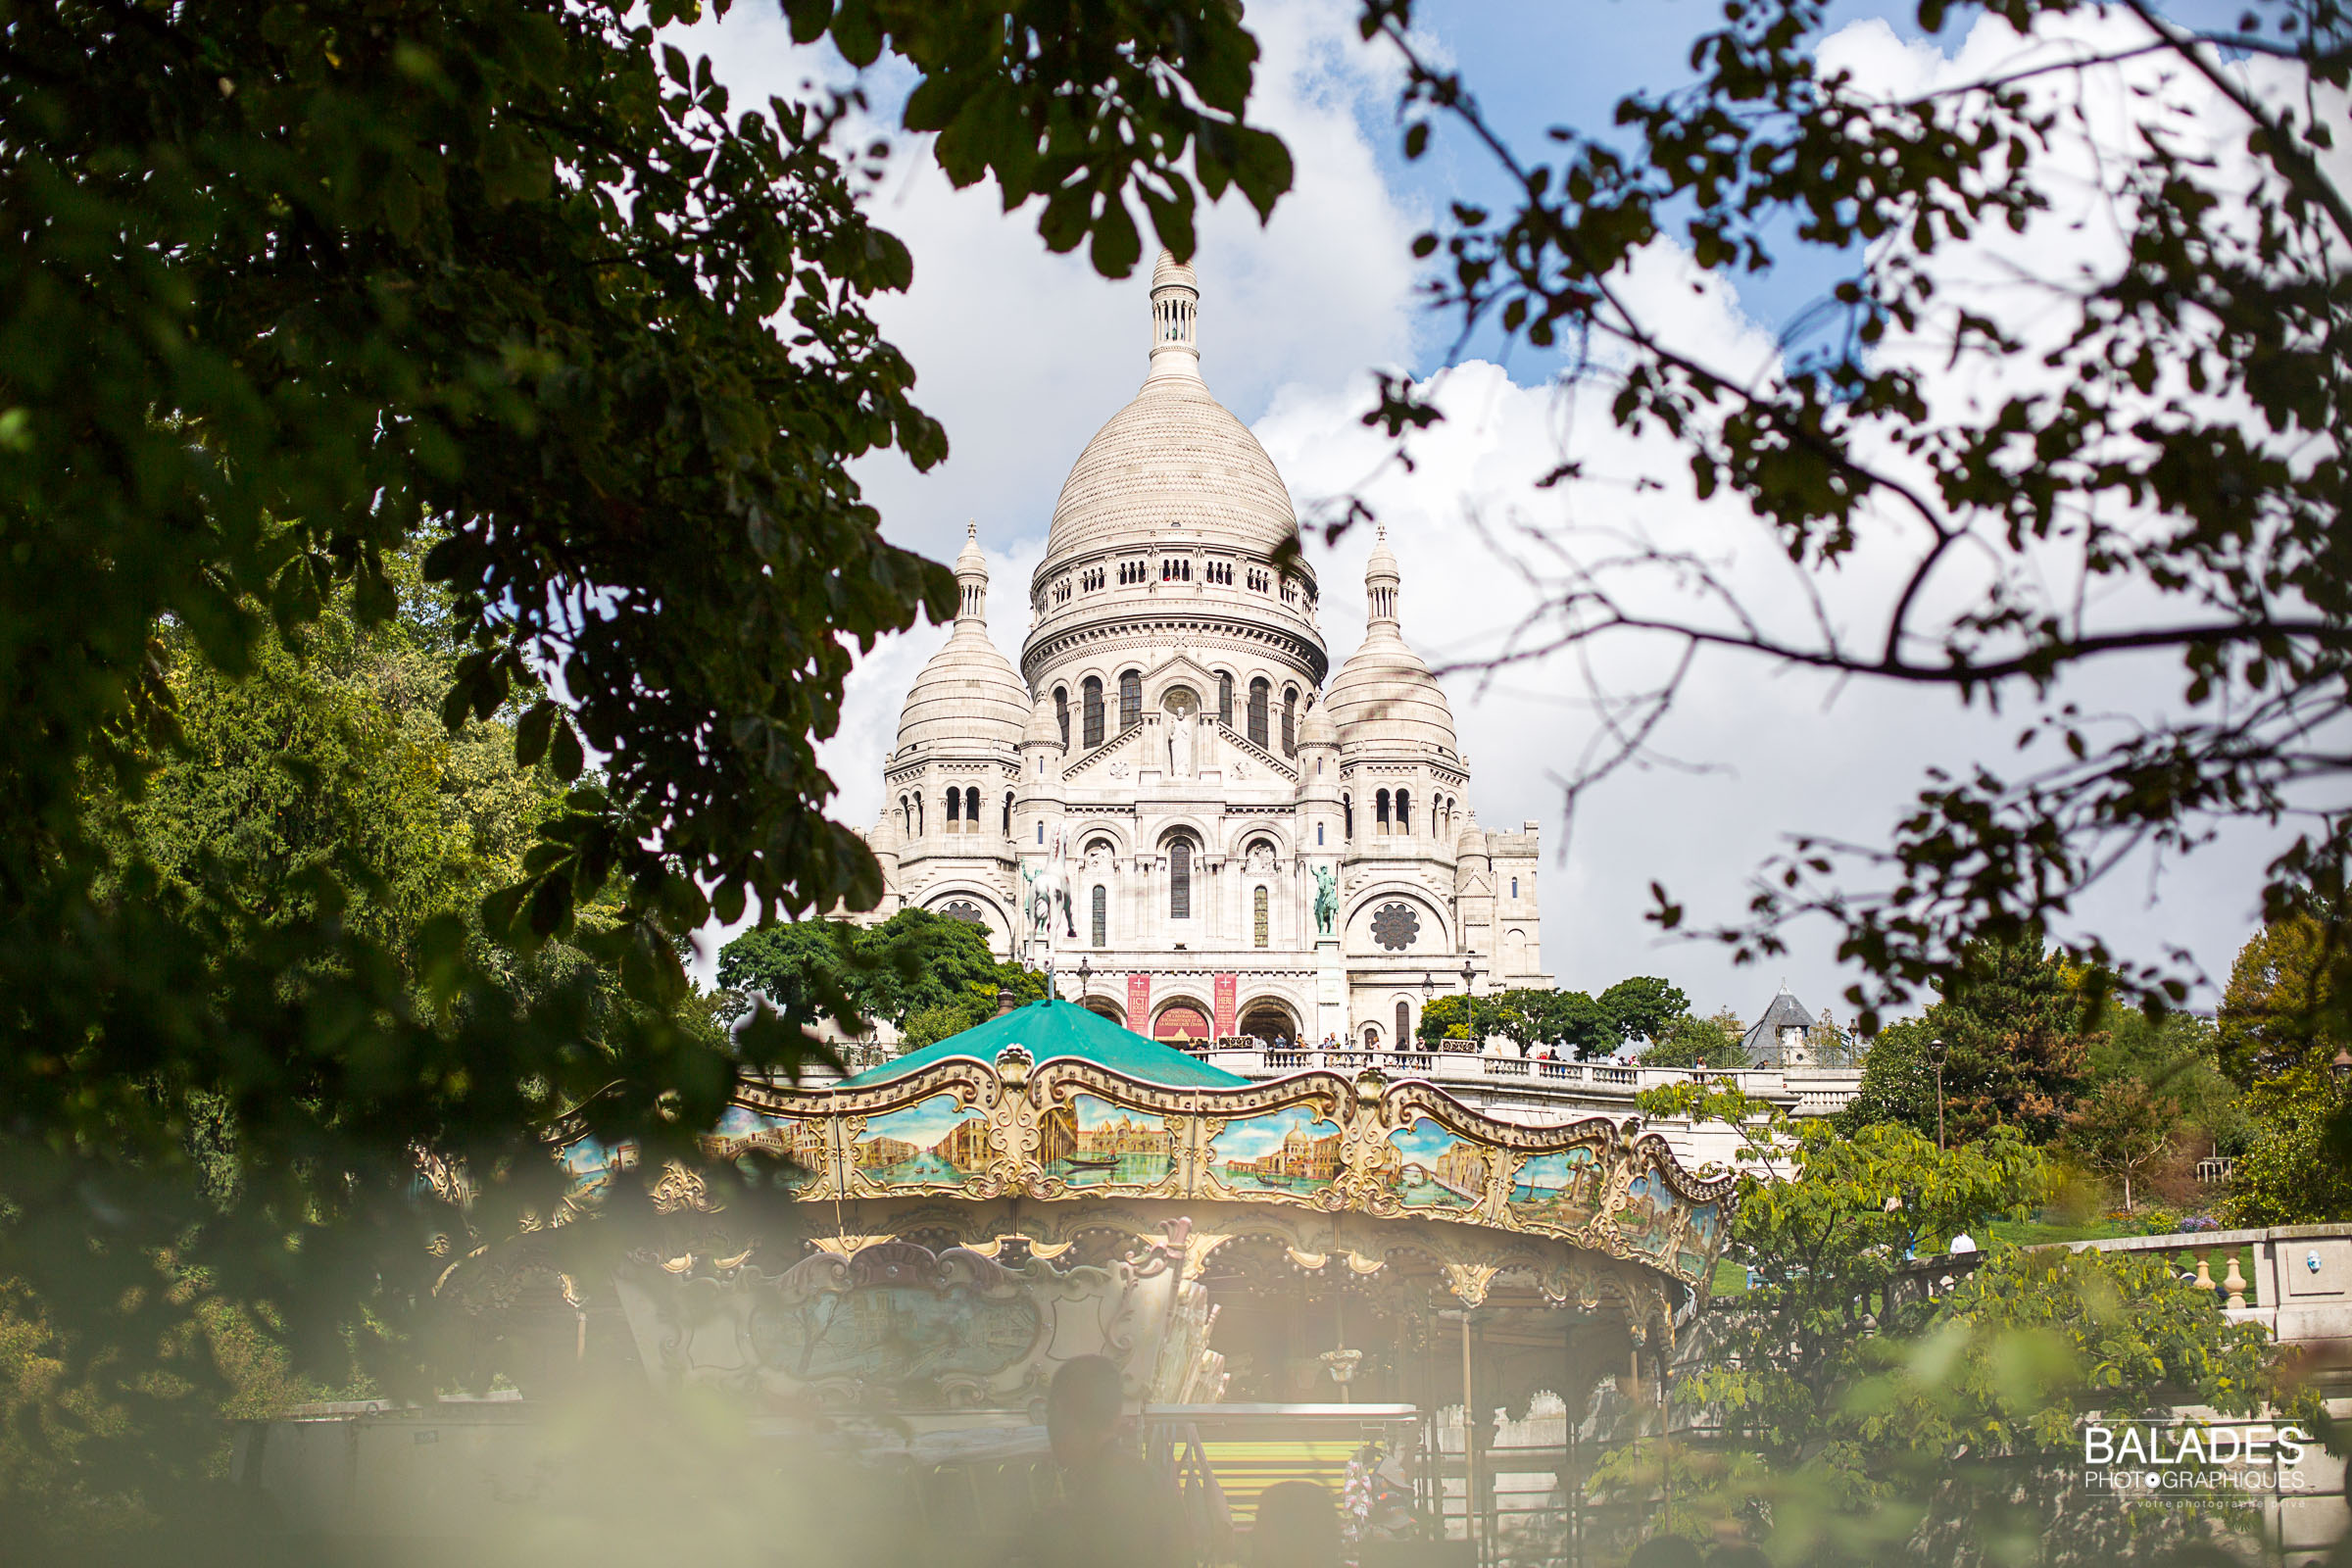 SNAPSHOTS OF MONTMARTRE - 13 OCT